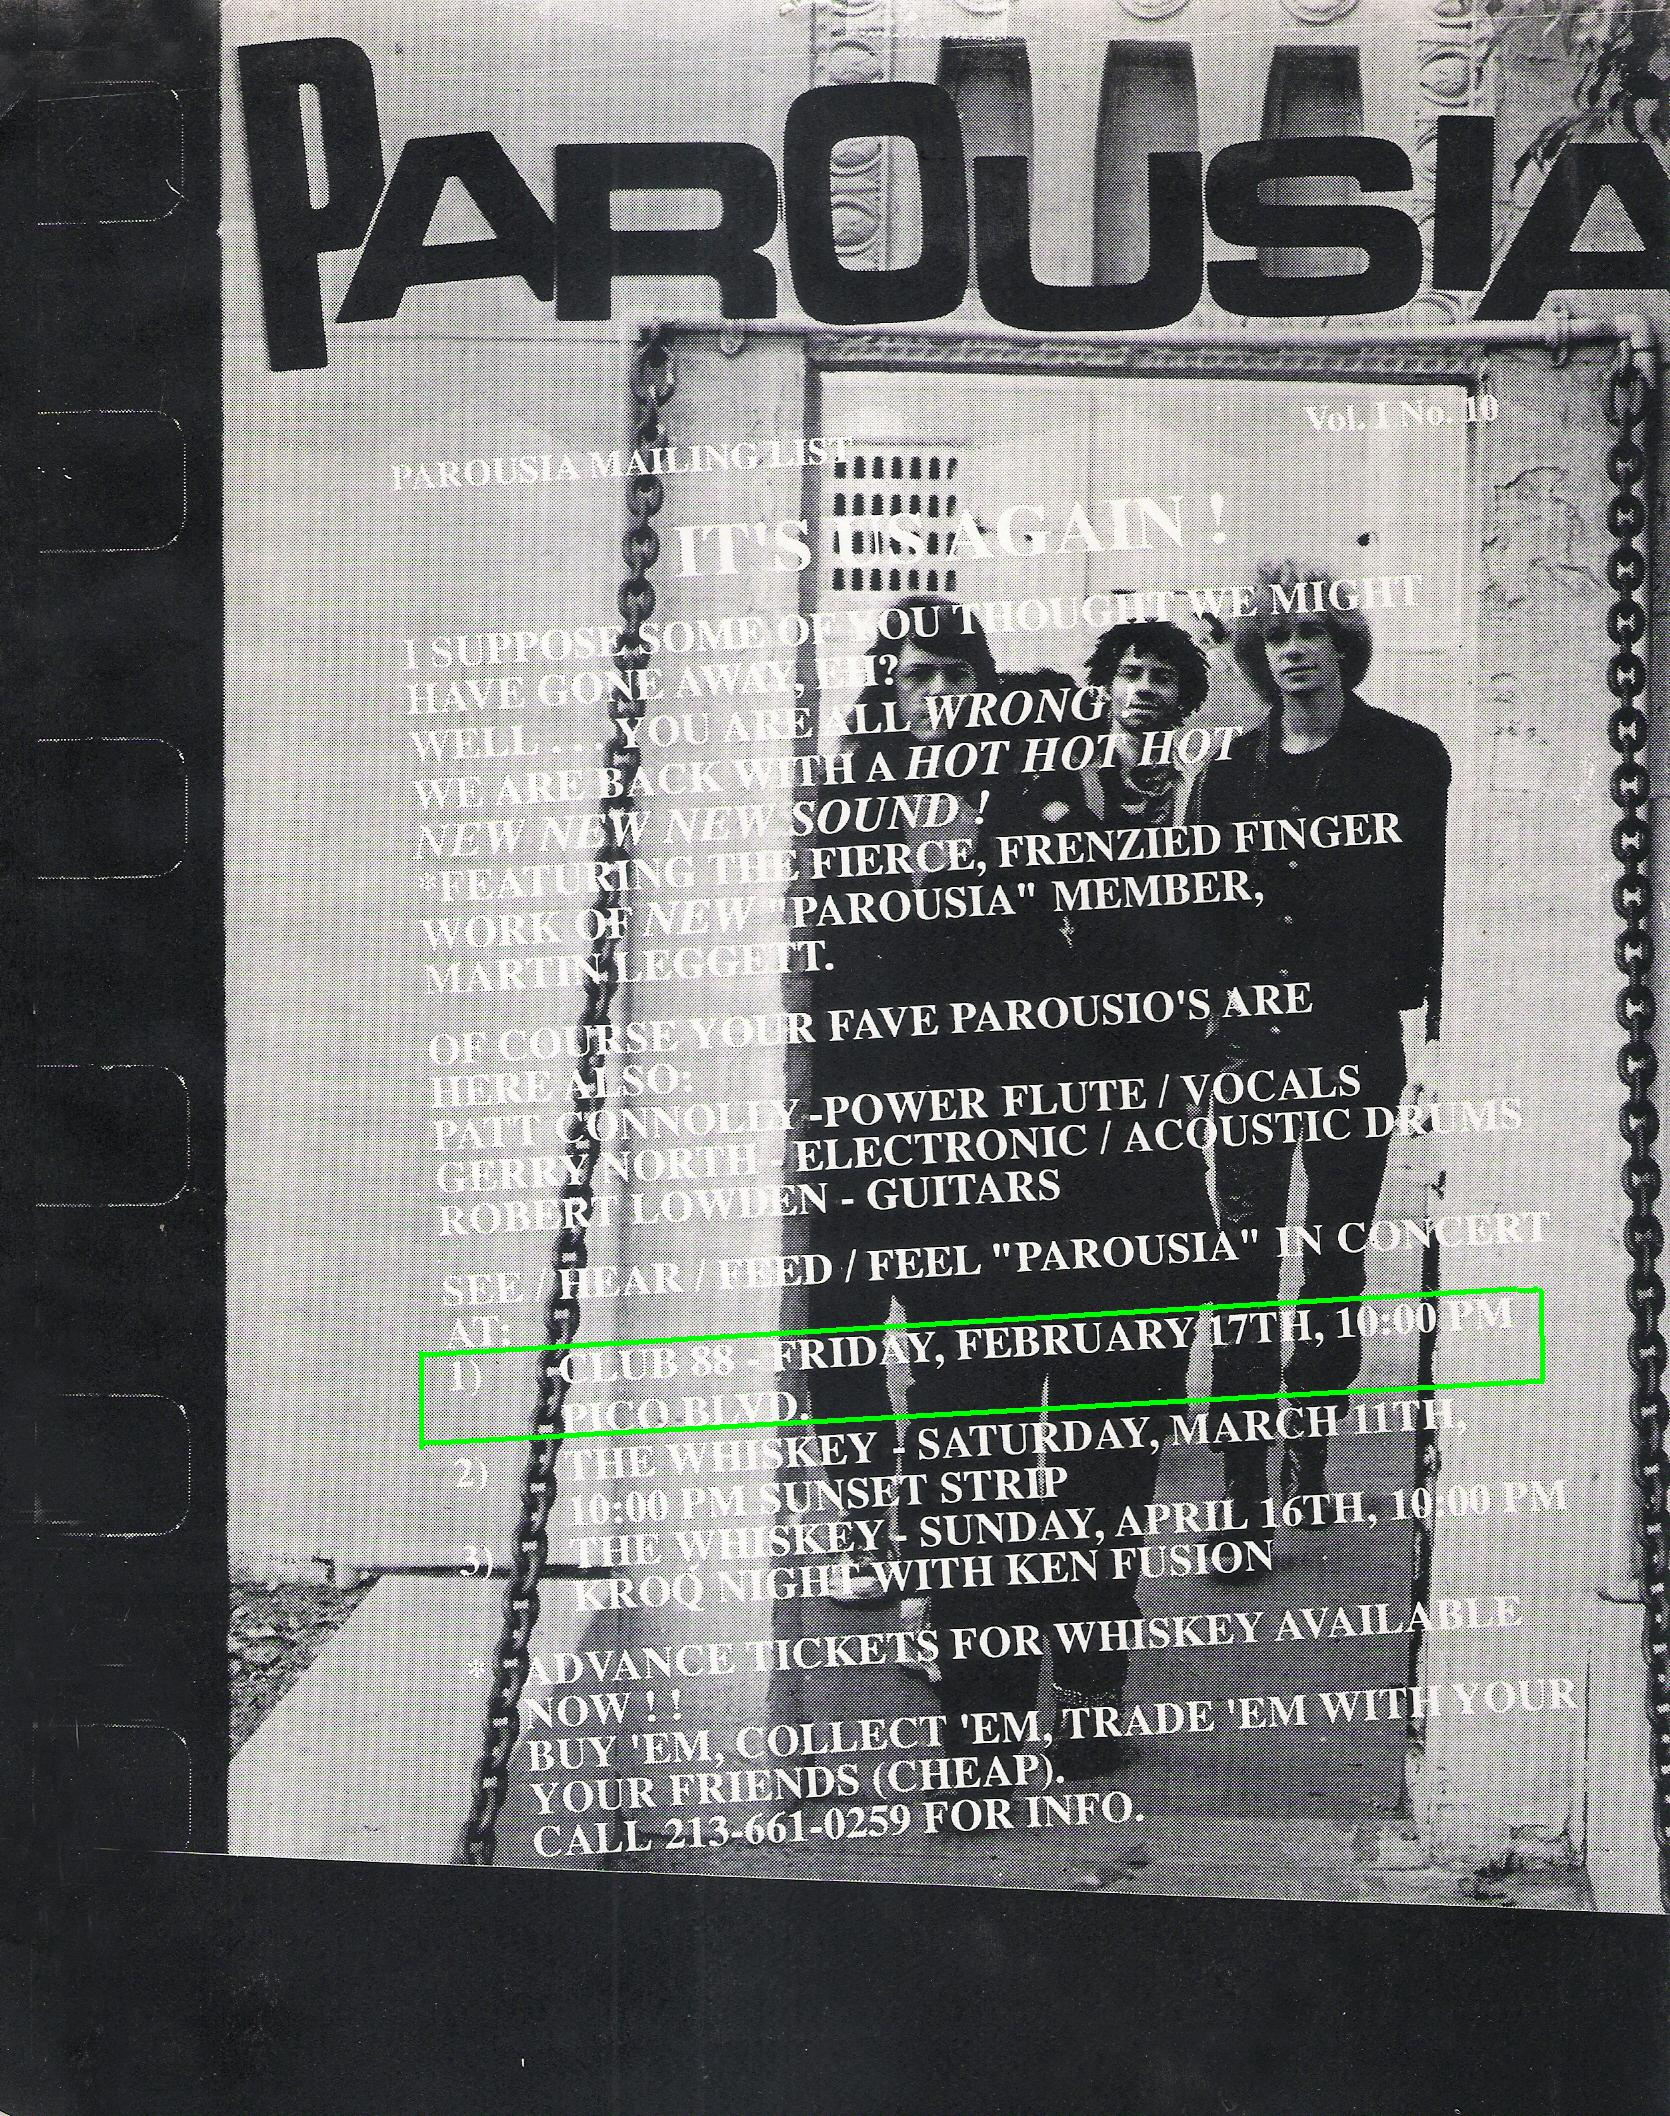 Parousia Flyer with keyboardist Marty Leggett - Club 88 - 02.17.1989